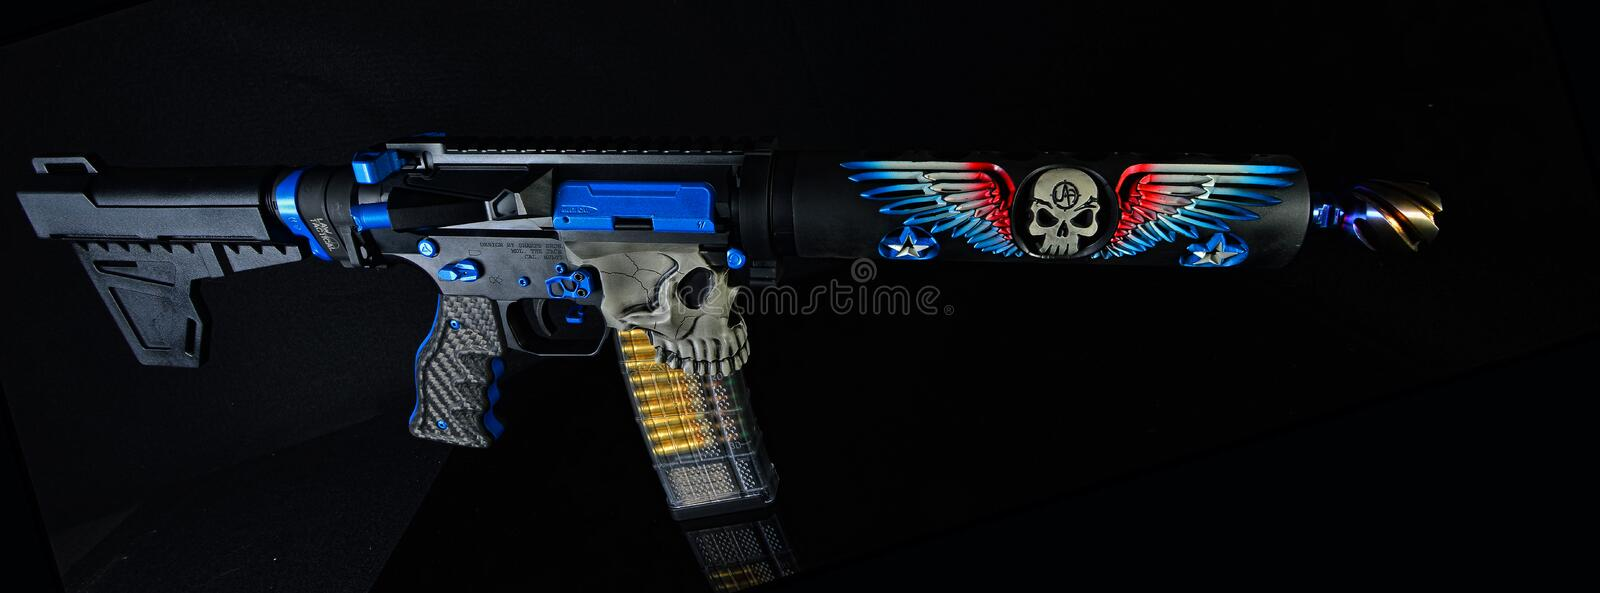 Ar15 Stock Images - Download 884 Royalty Free Photos